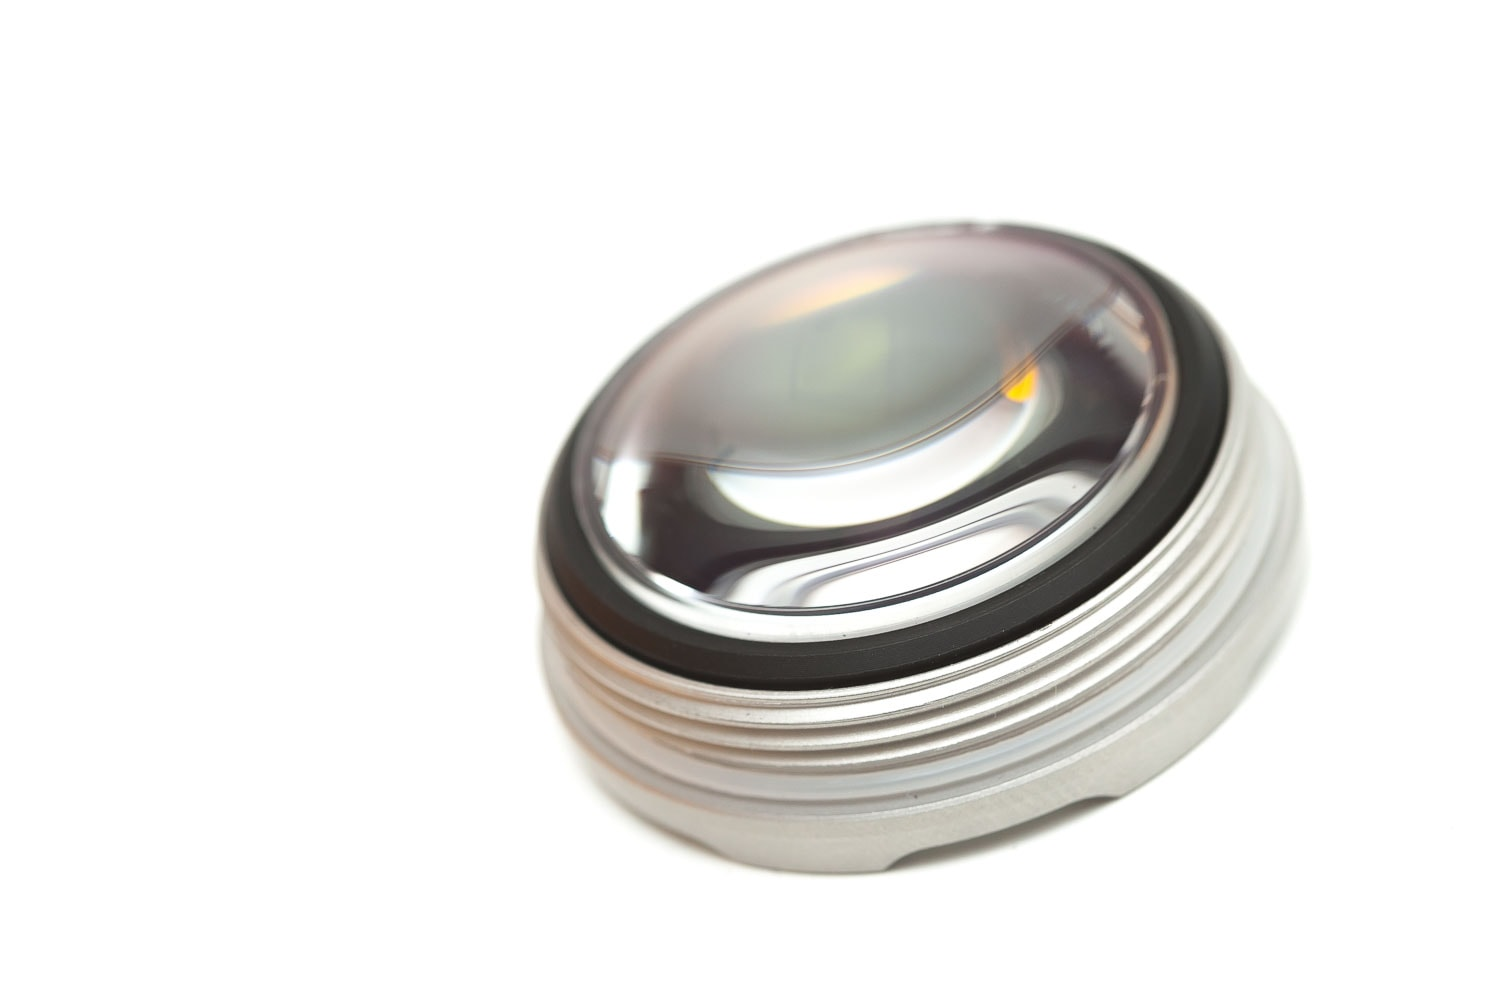 Convex lens of the Jetbeam M2S WP-RX